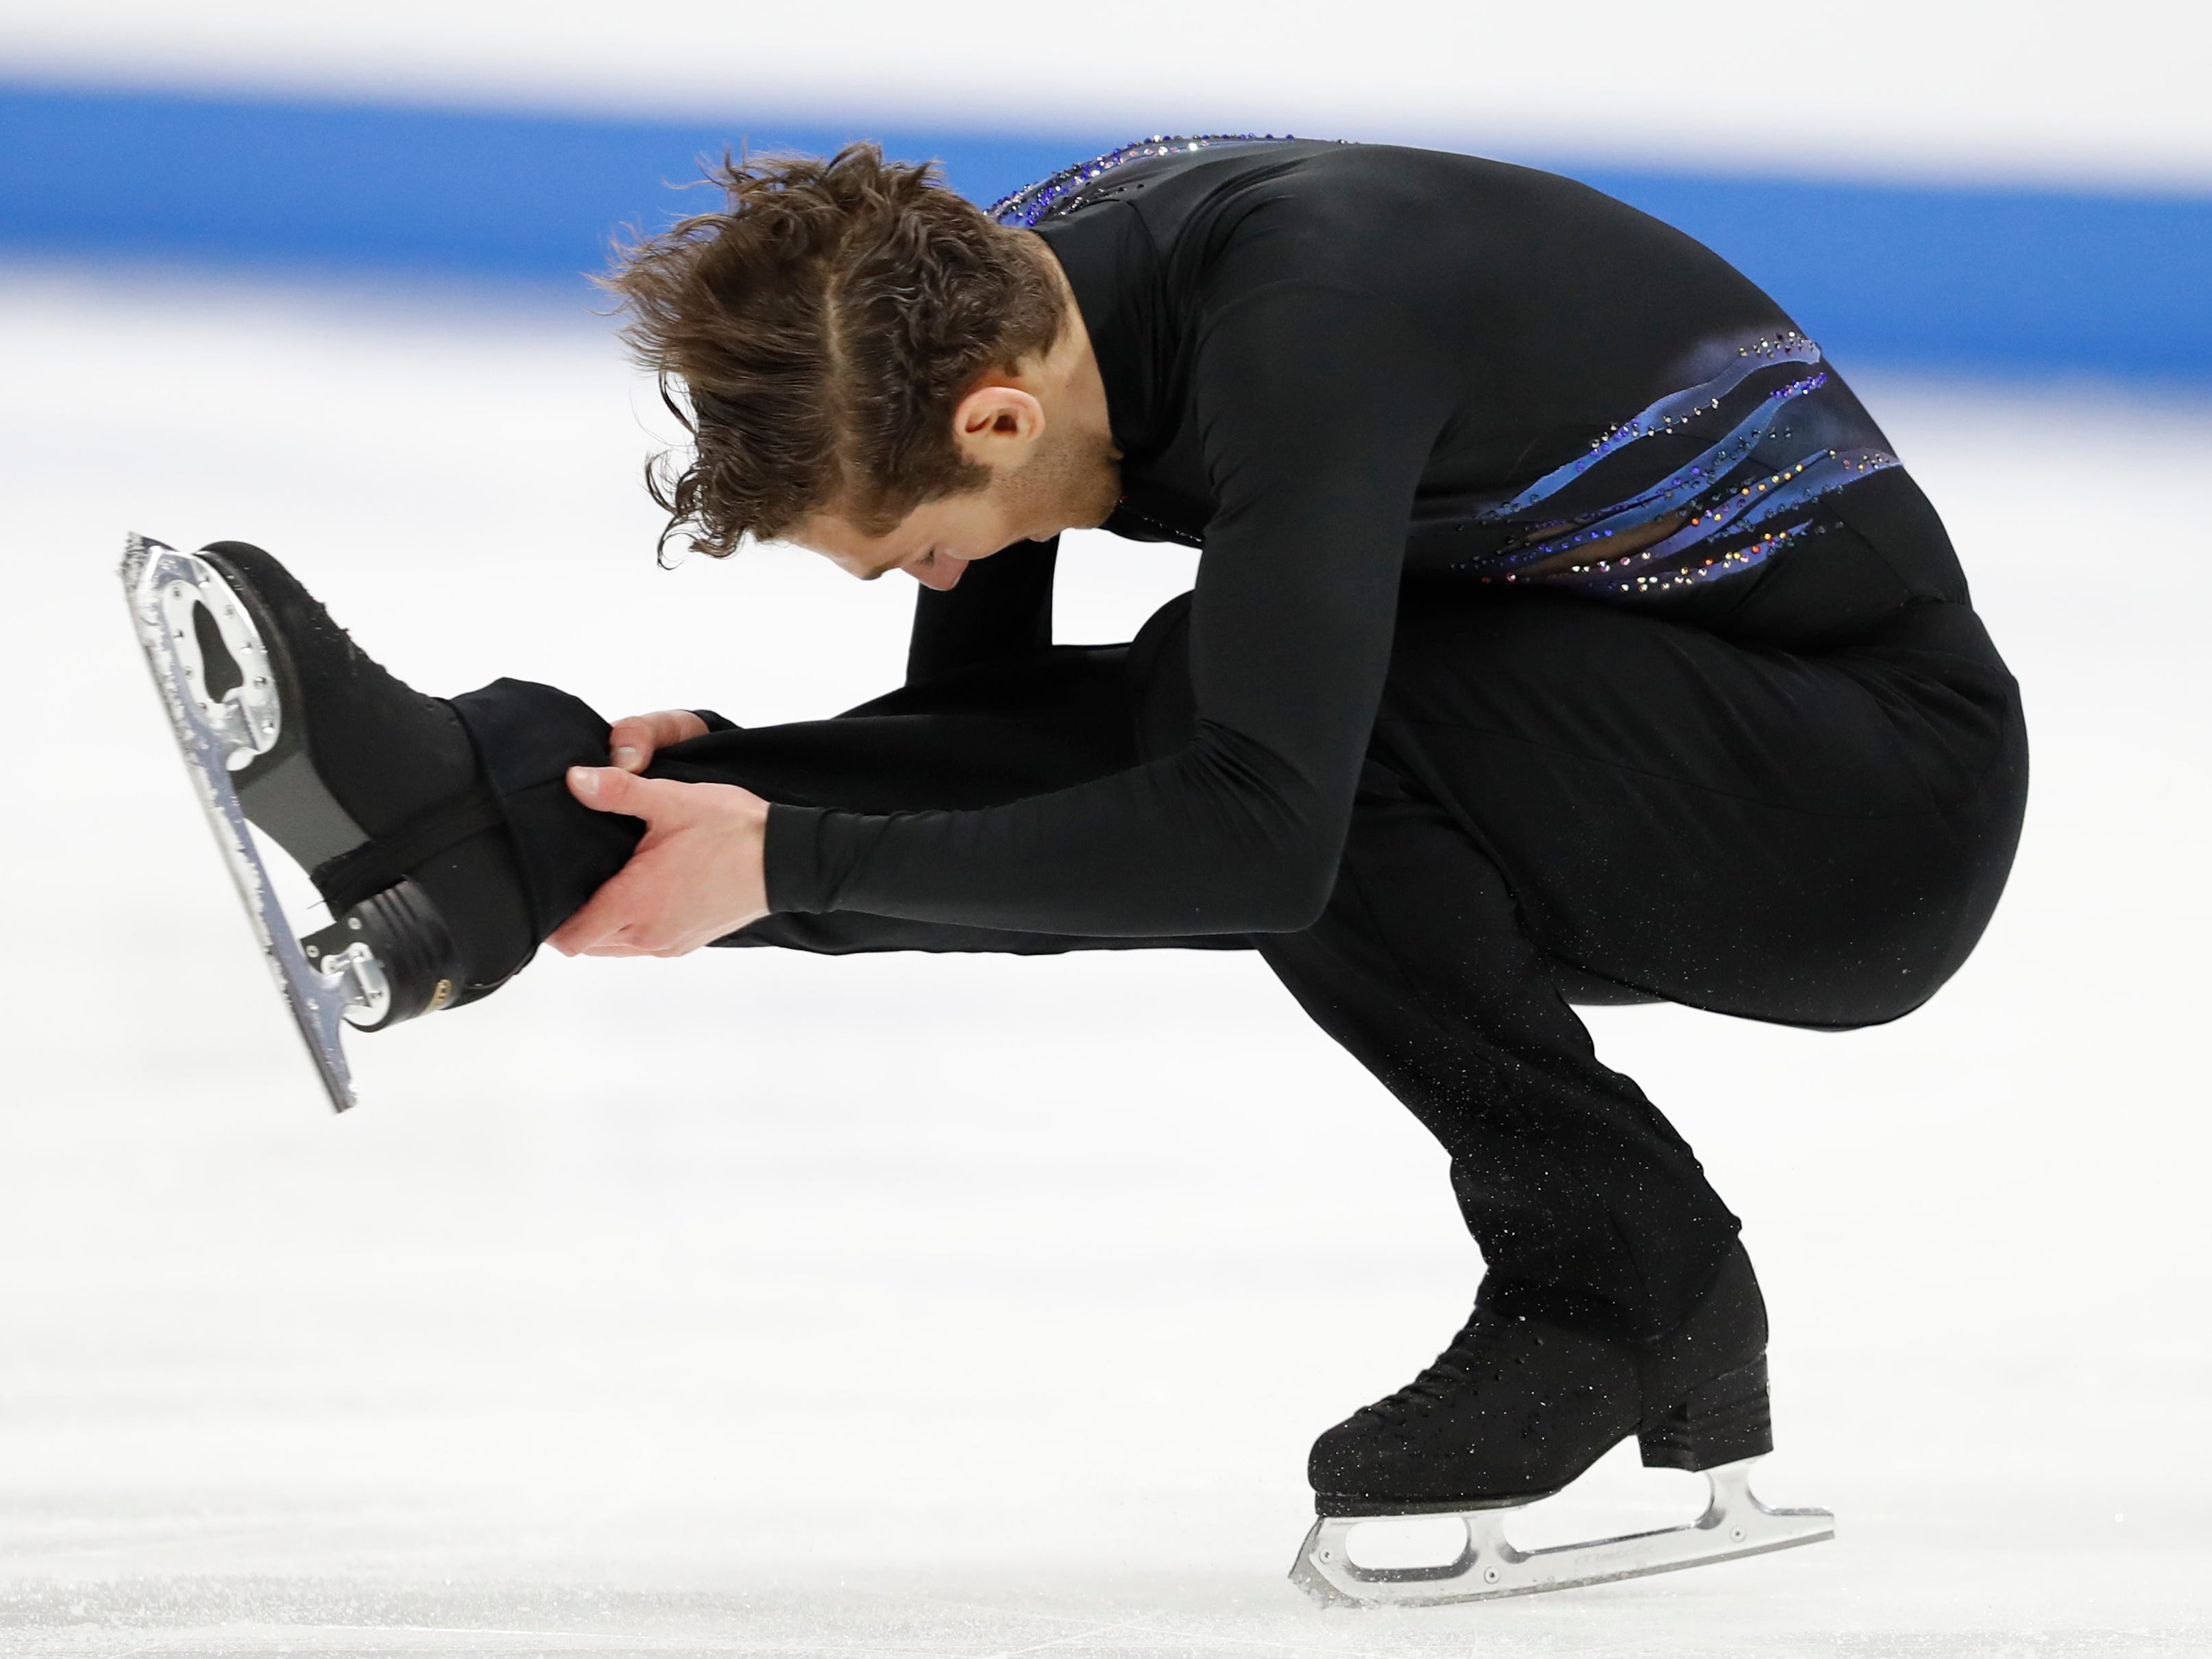 Third-place mens' finisher Jason Brown performs a spin during the 2019 Geico U.S. Figure Skating Championships.